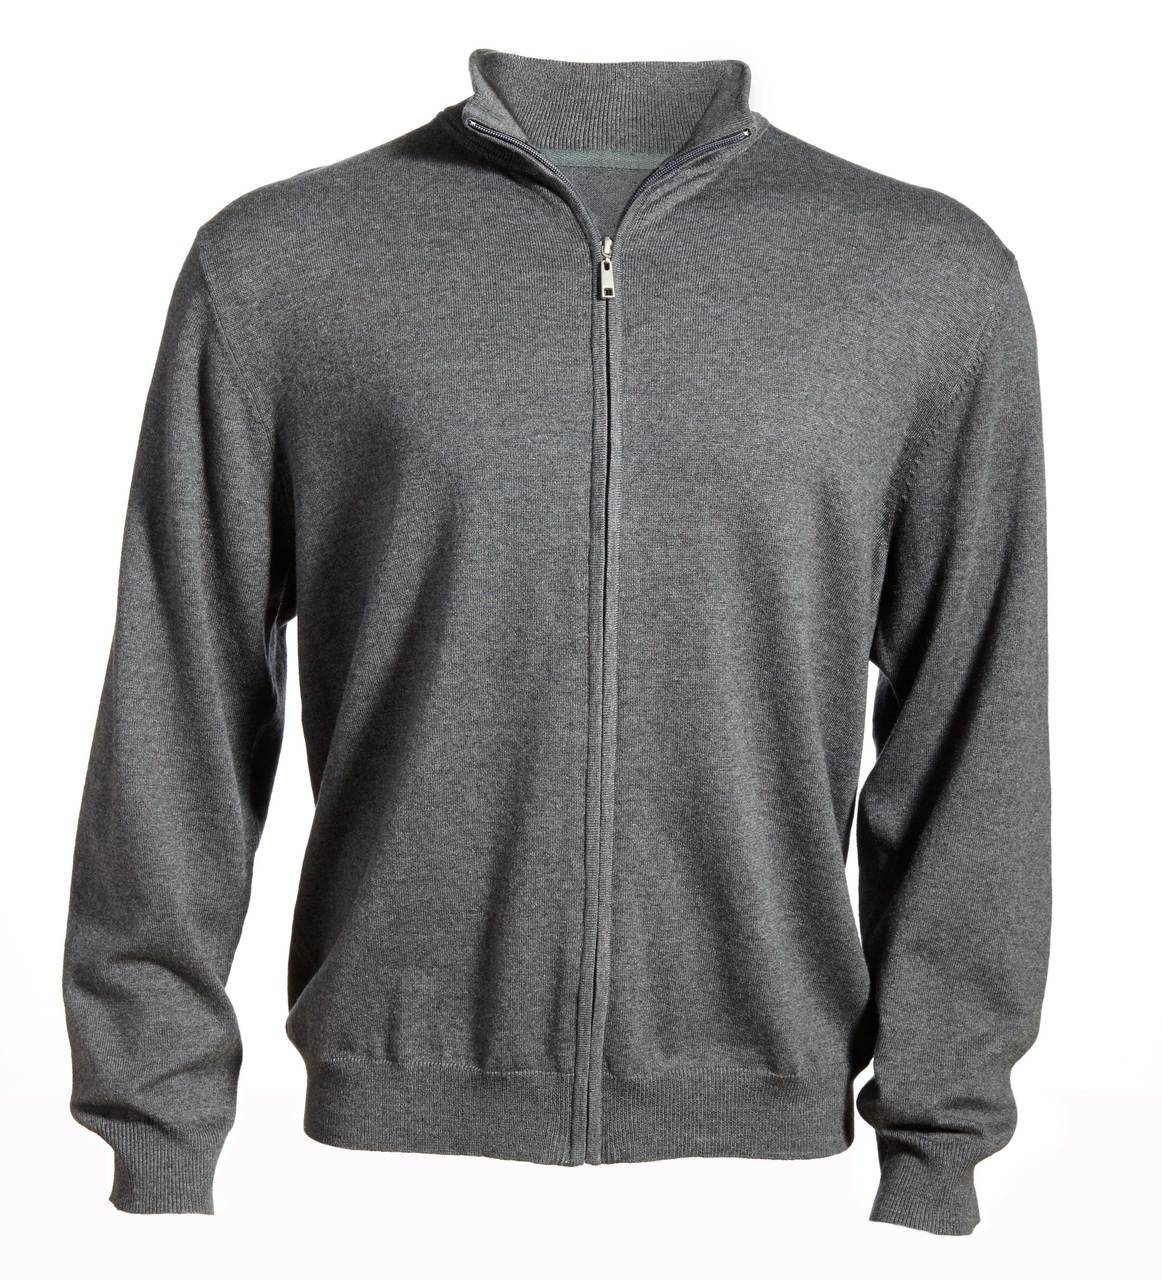 Men's Full Zip Cardigan Sweater